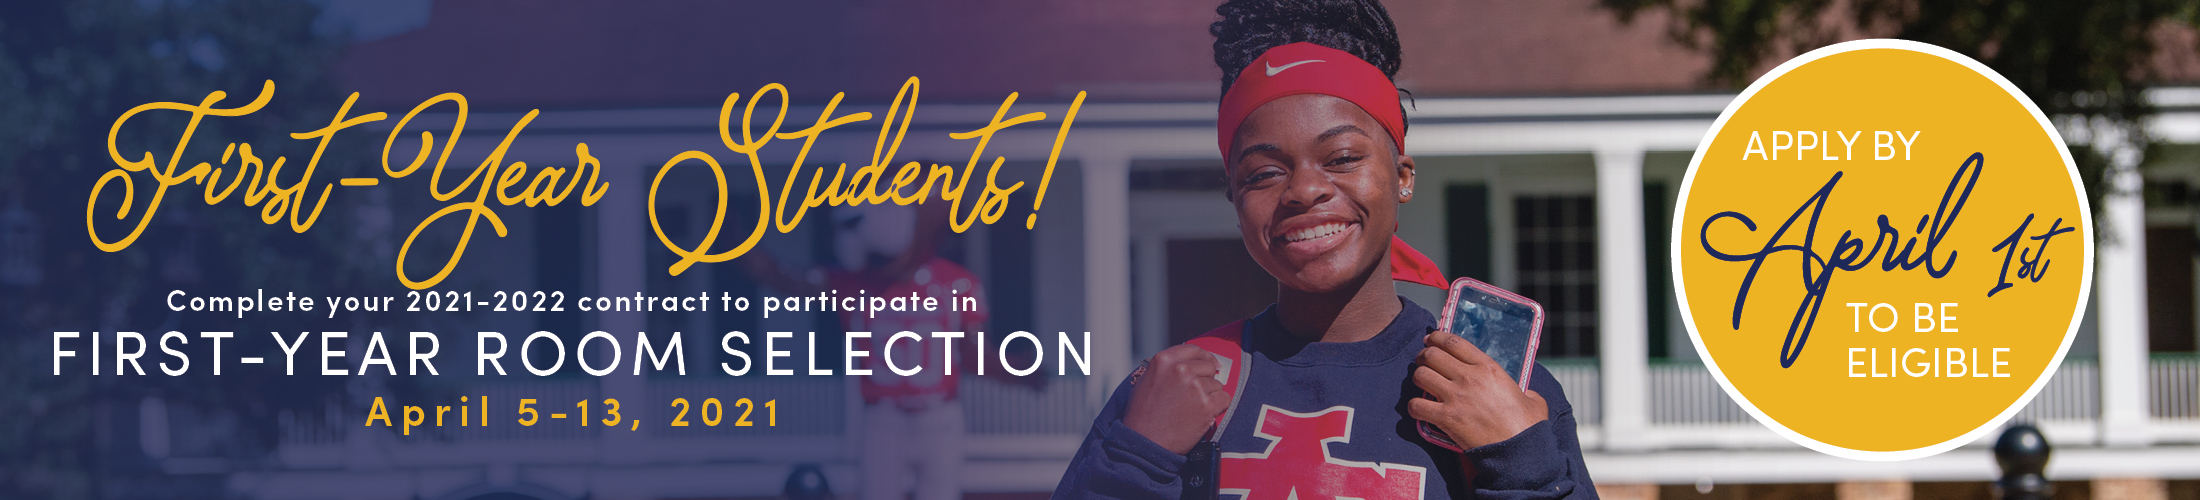 First-year students, complete your contract by April 1 for First-Year Room Selection!